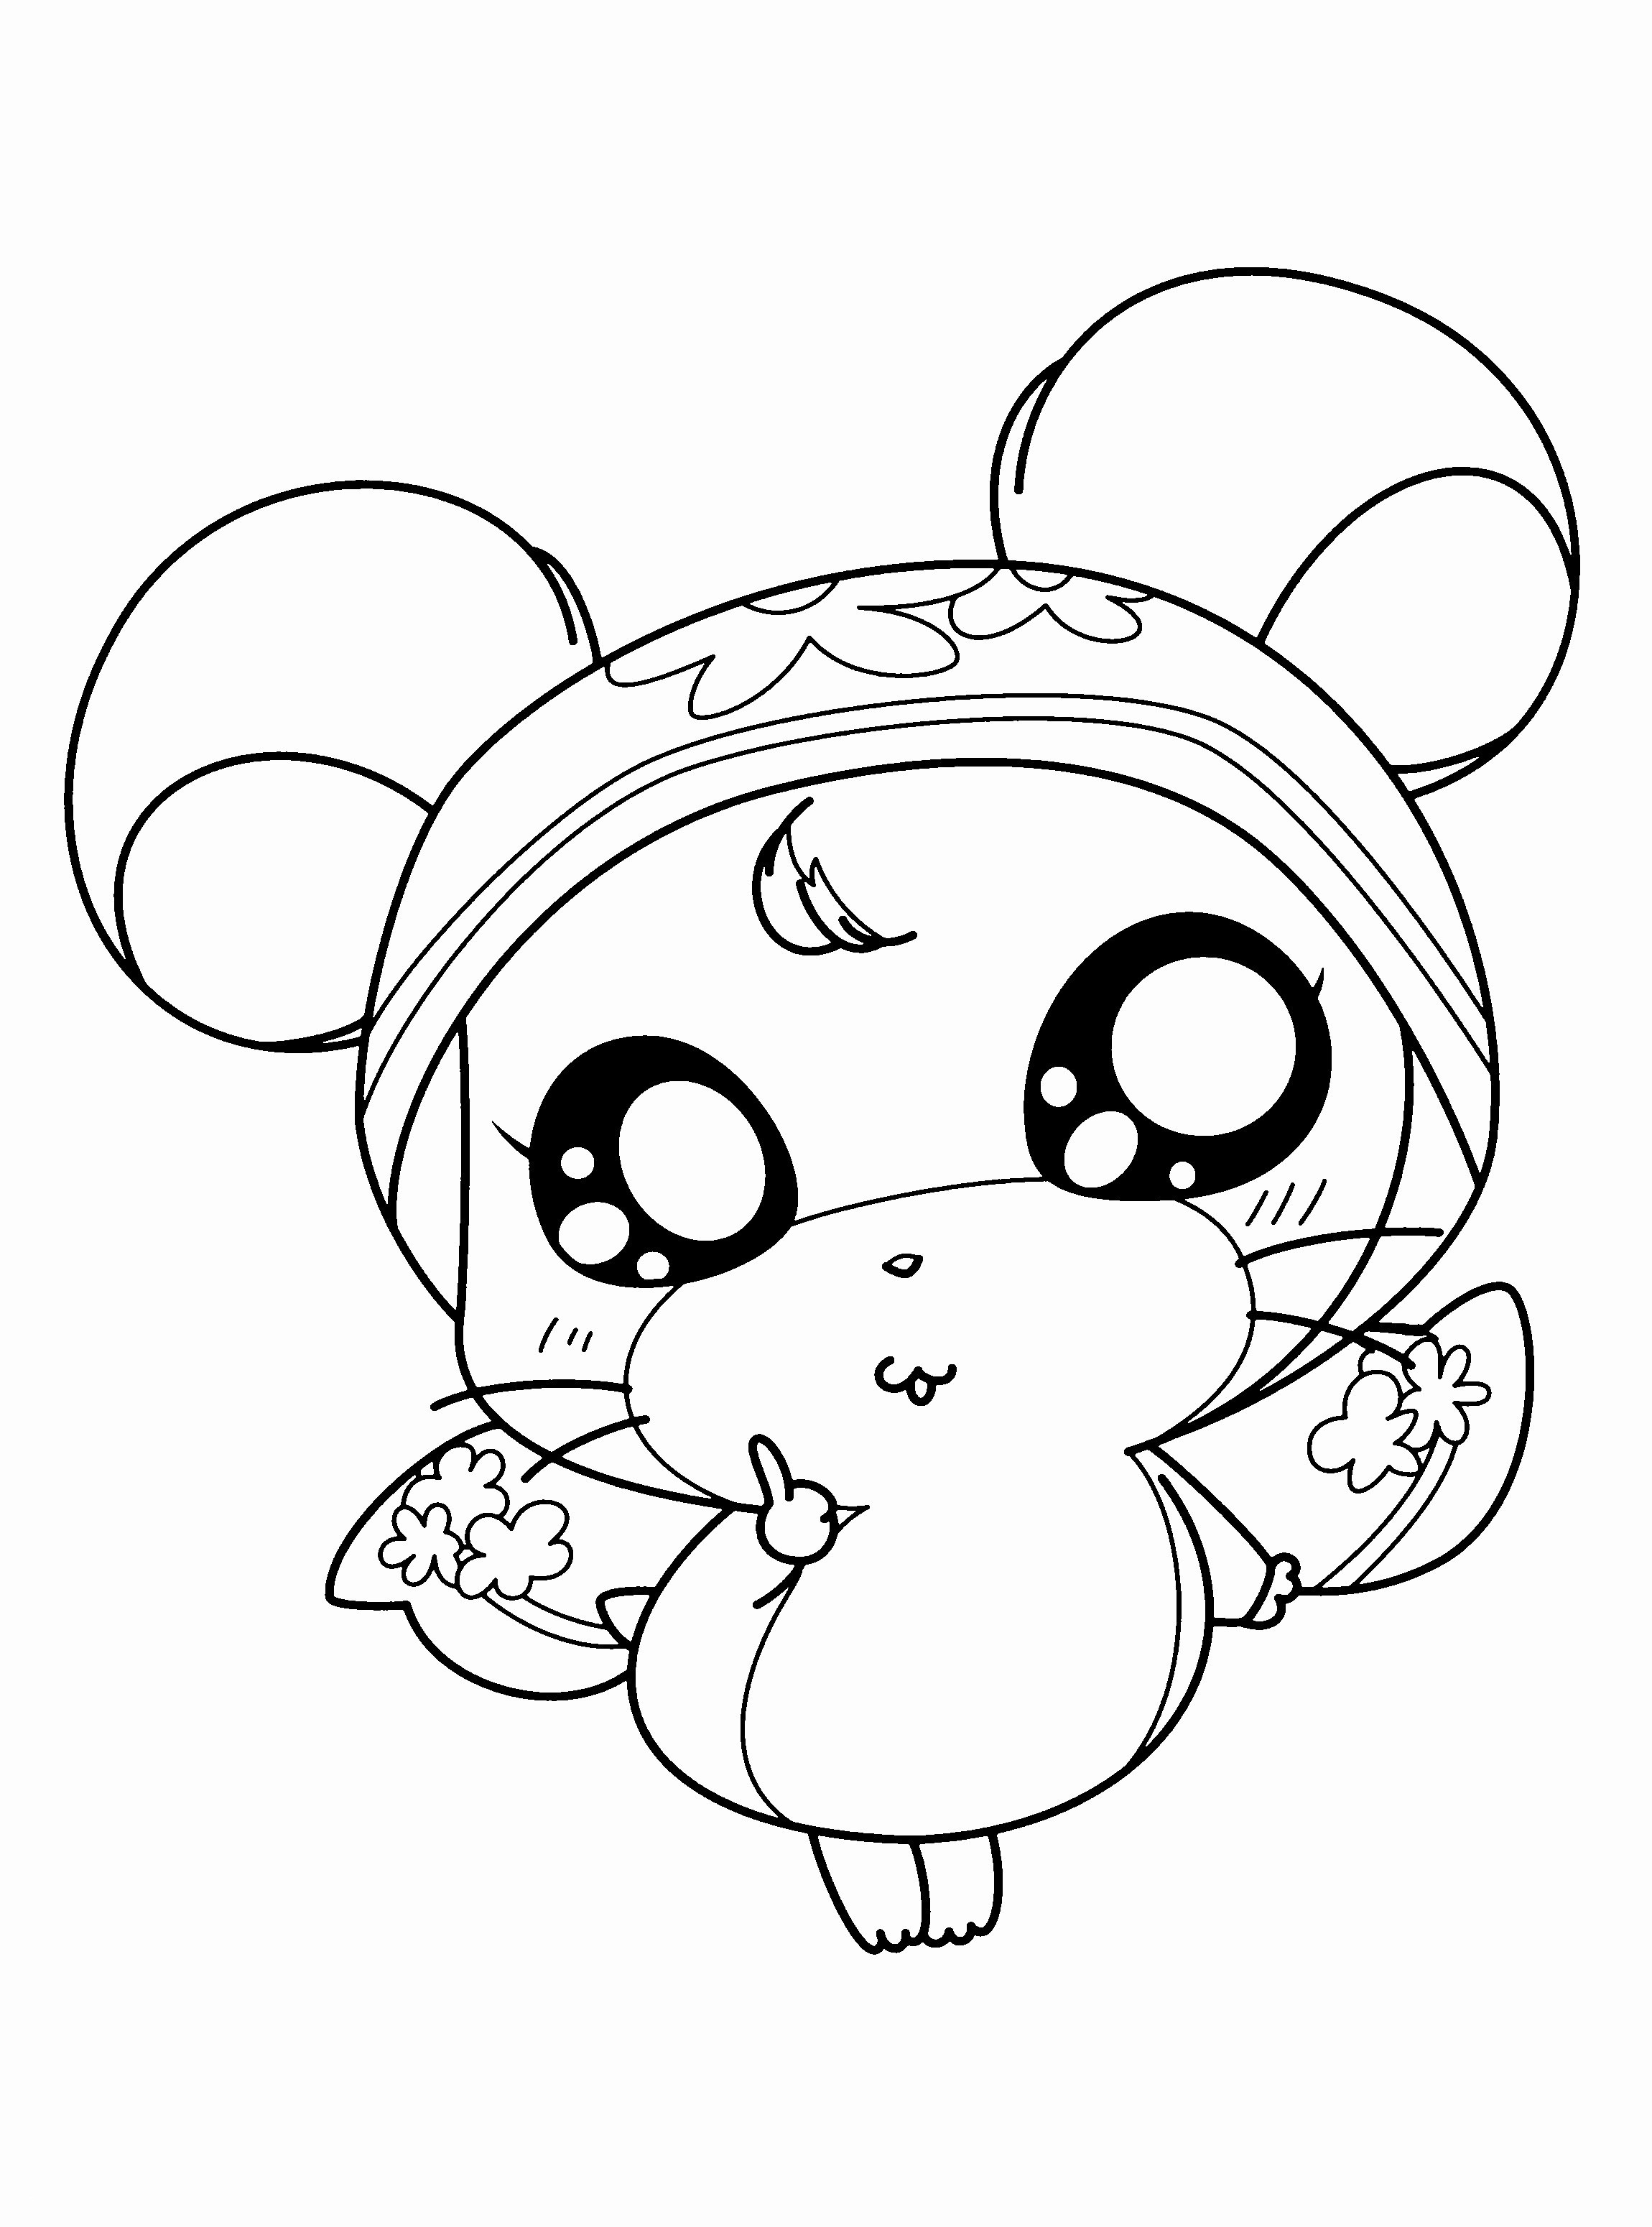 complicated animal coloring pages Download-Coloring Pages Bookmarks Elegant Coloring Pages for Girls Lovely Printable Cds 0d – Fun Time 8-c